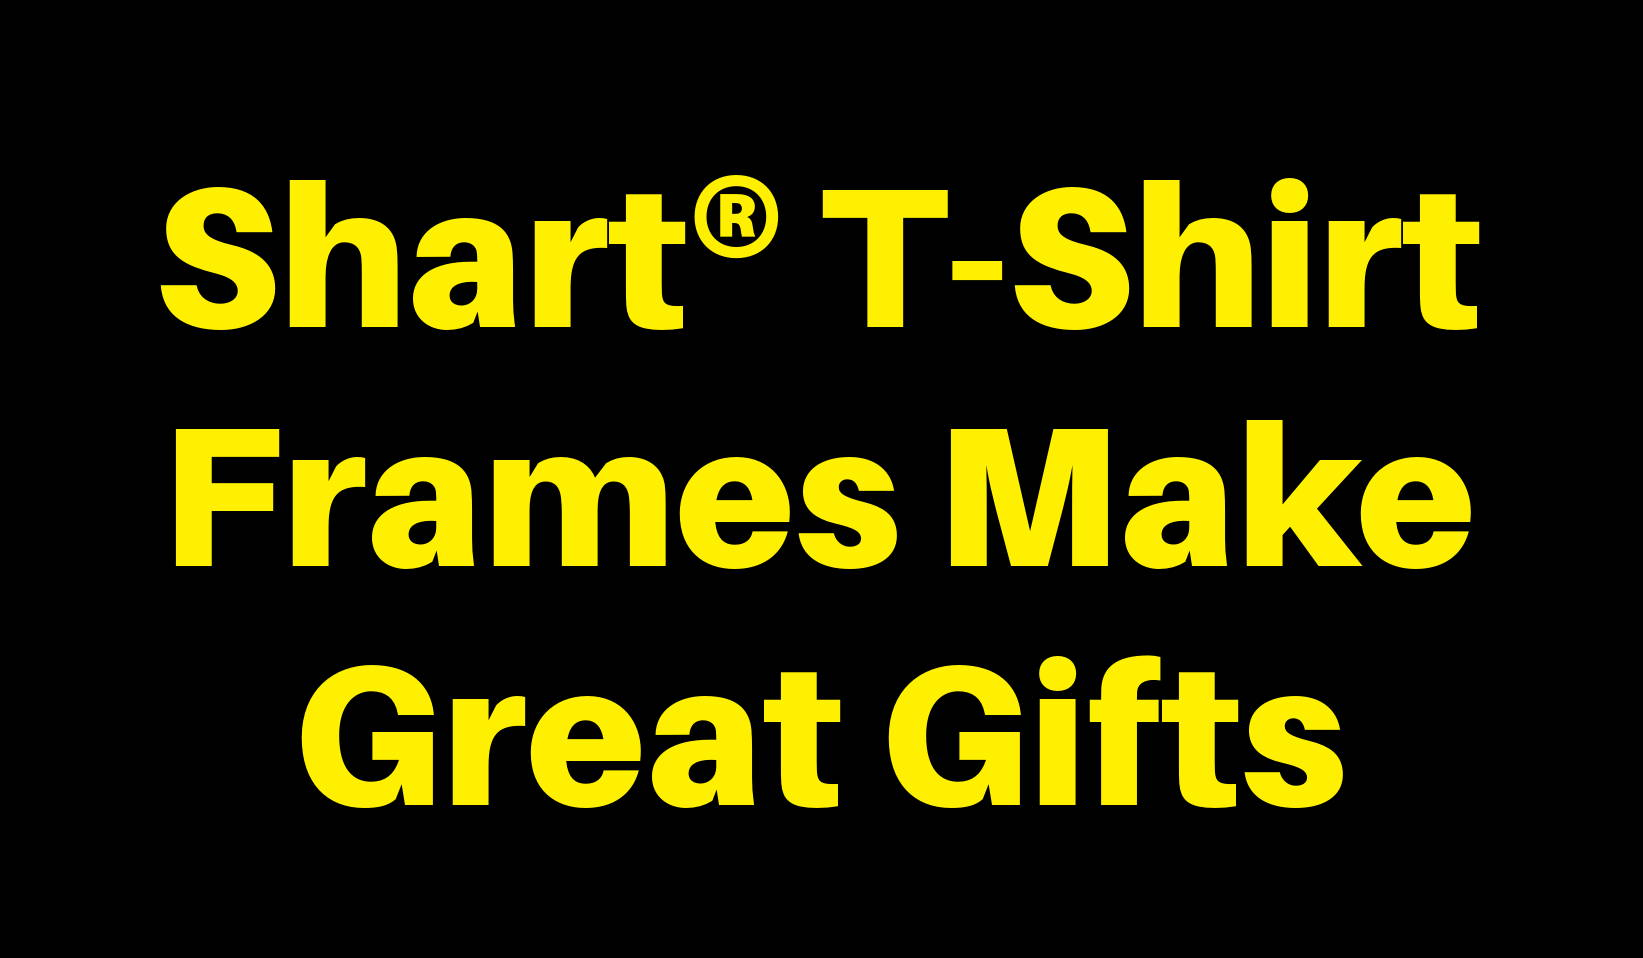 Shart T-Shirt Frames Make Great Gifts